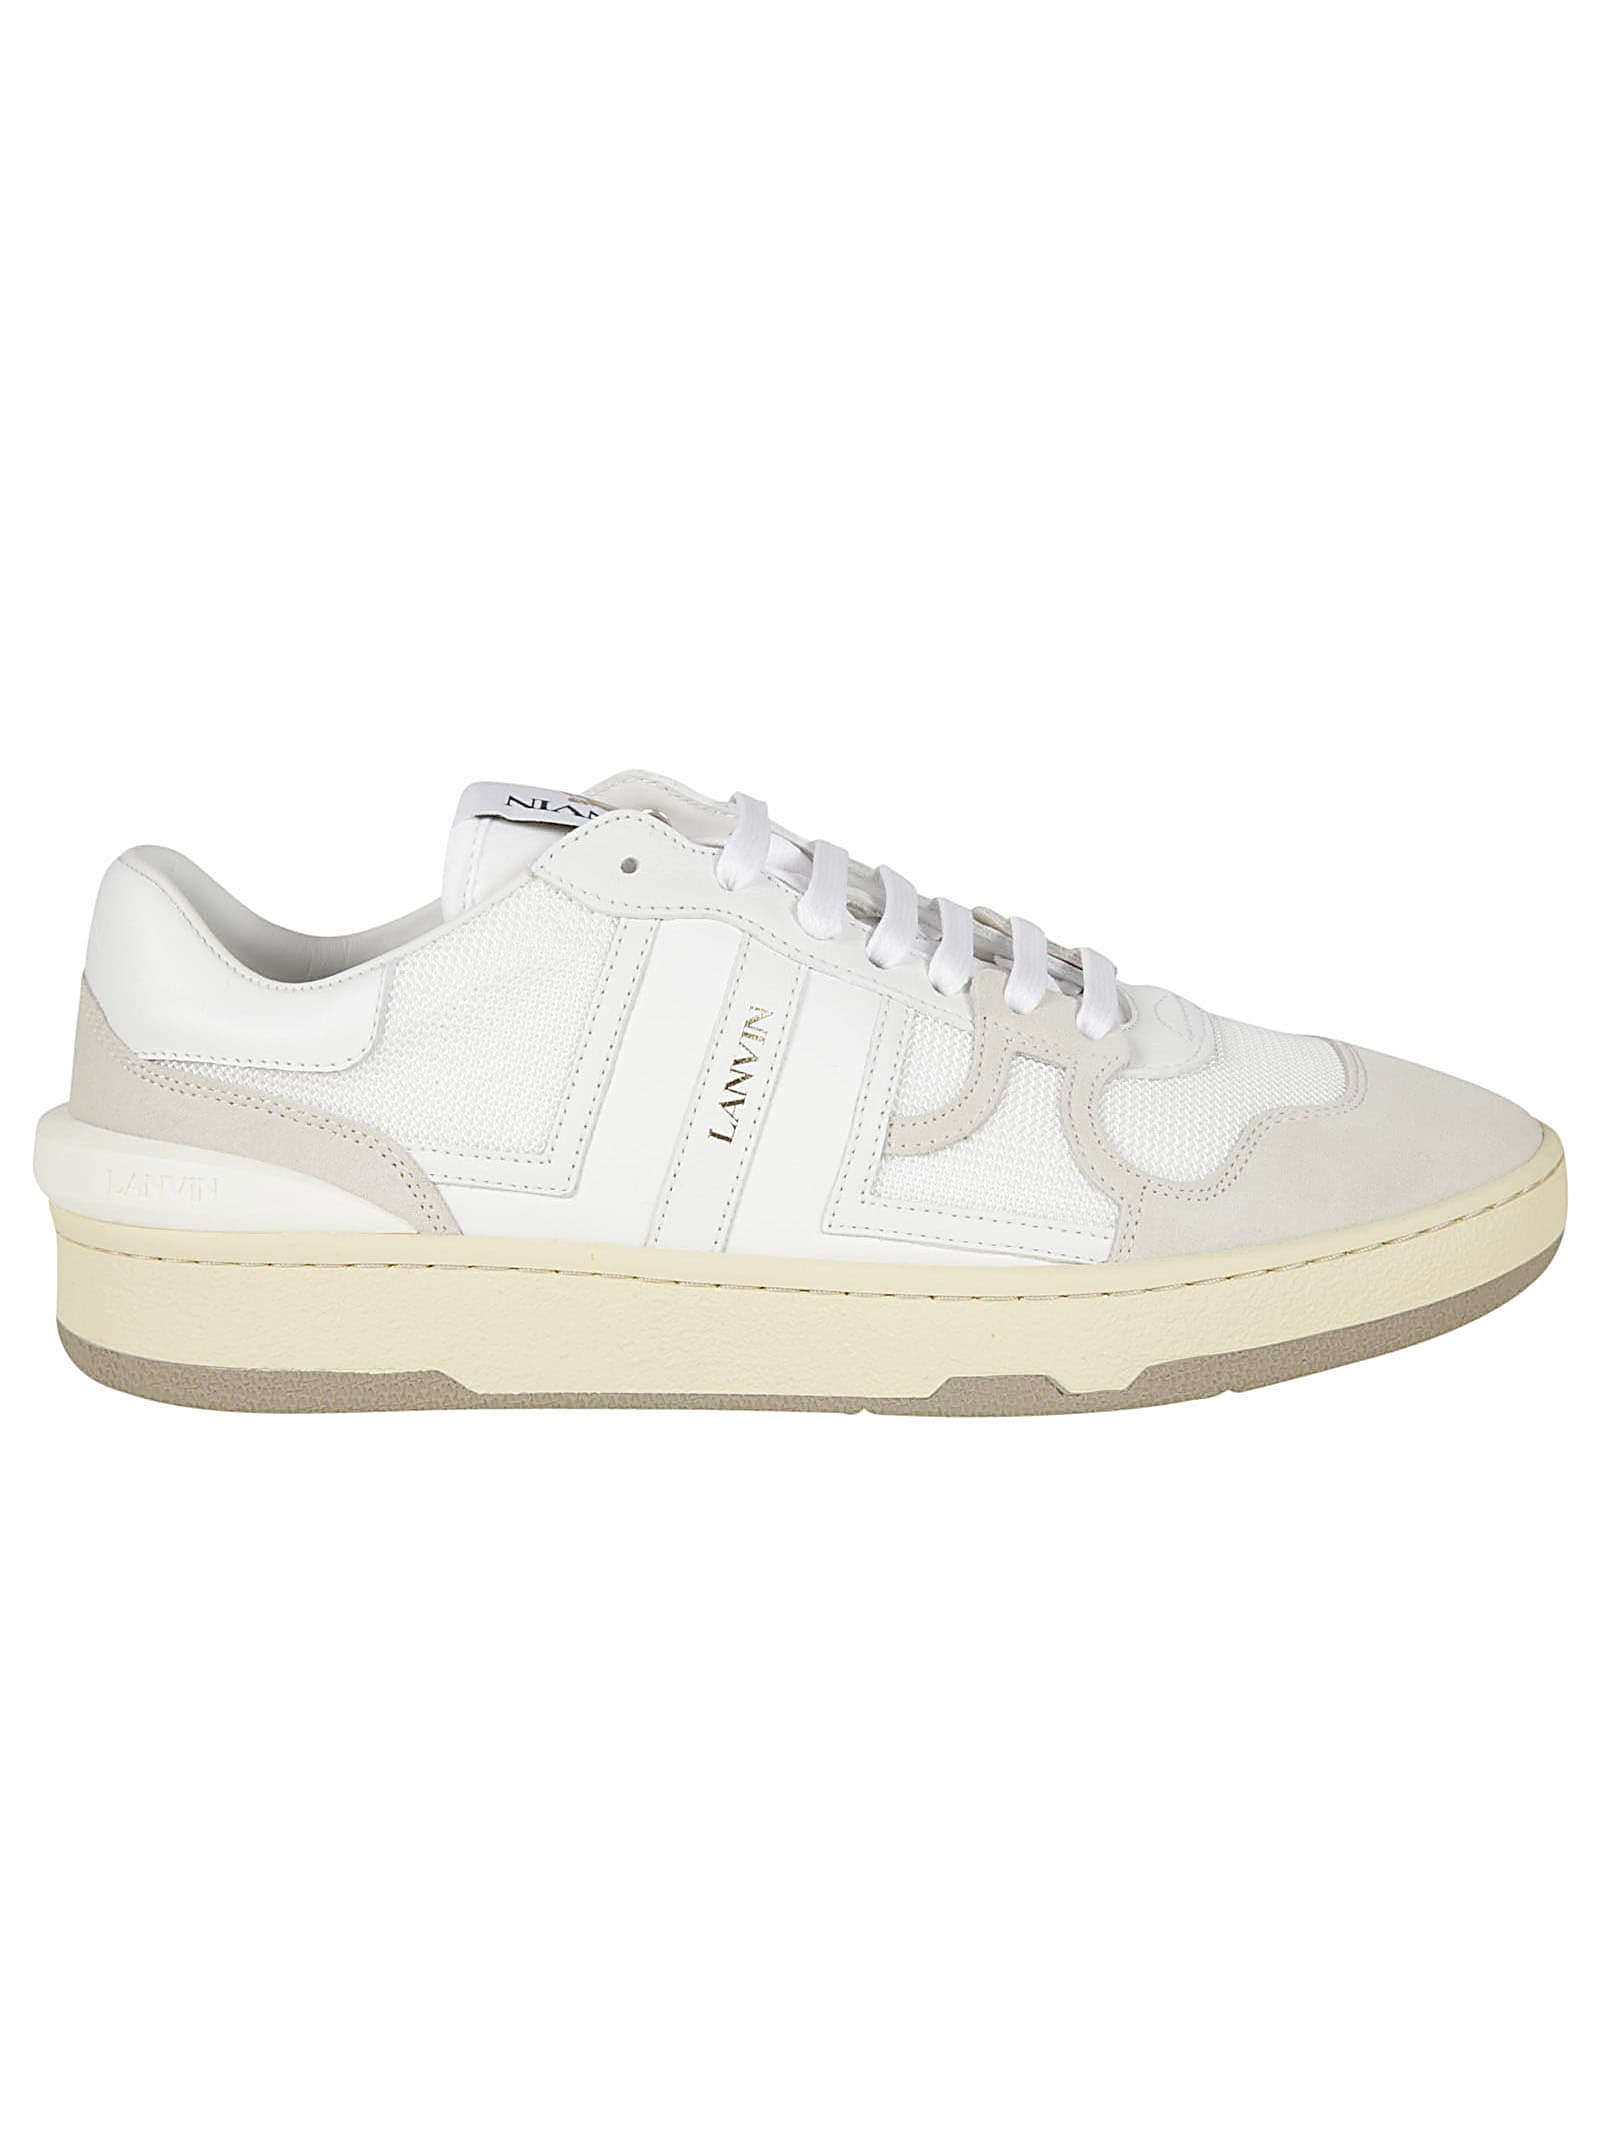 Lanvin Tennis Low-top Sneakers